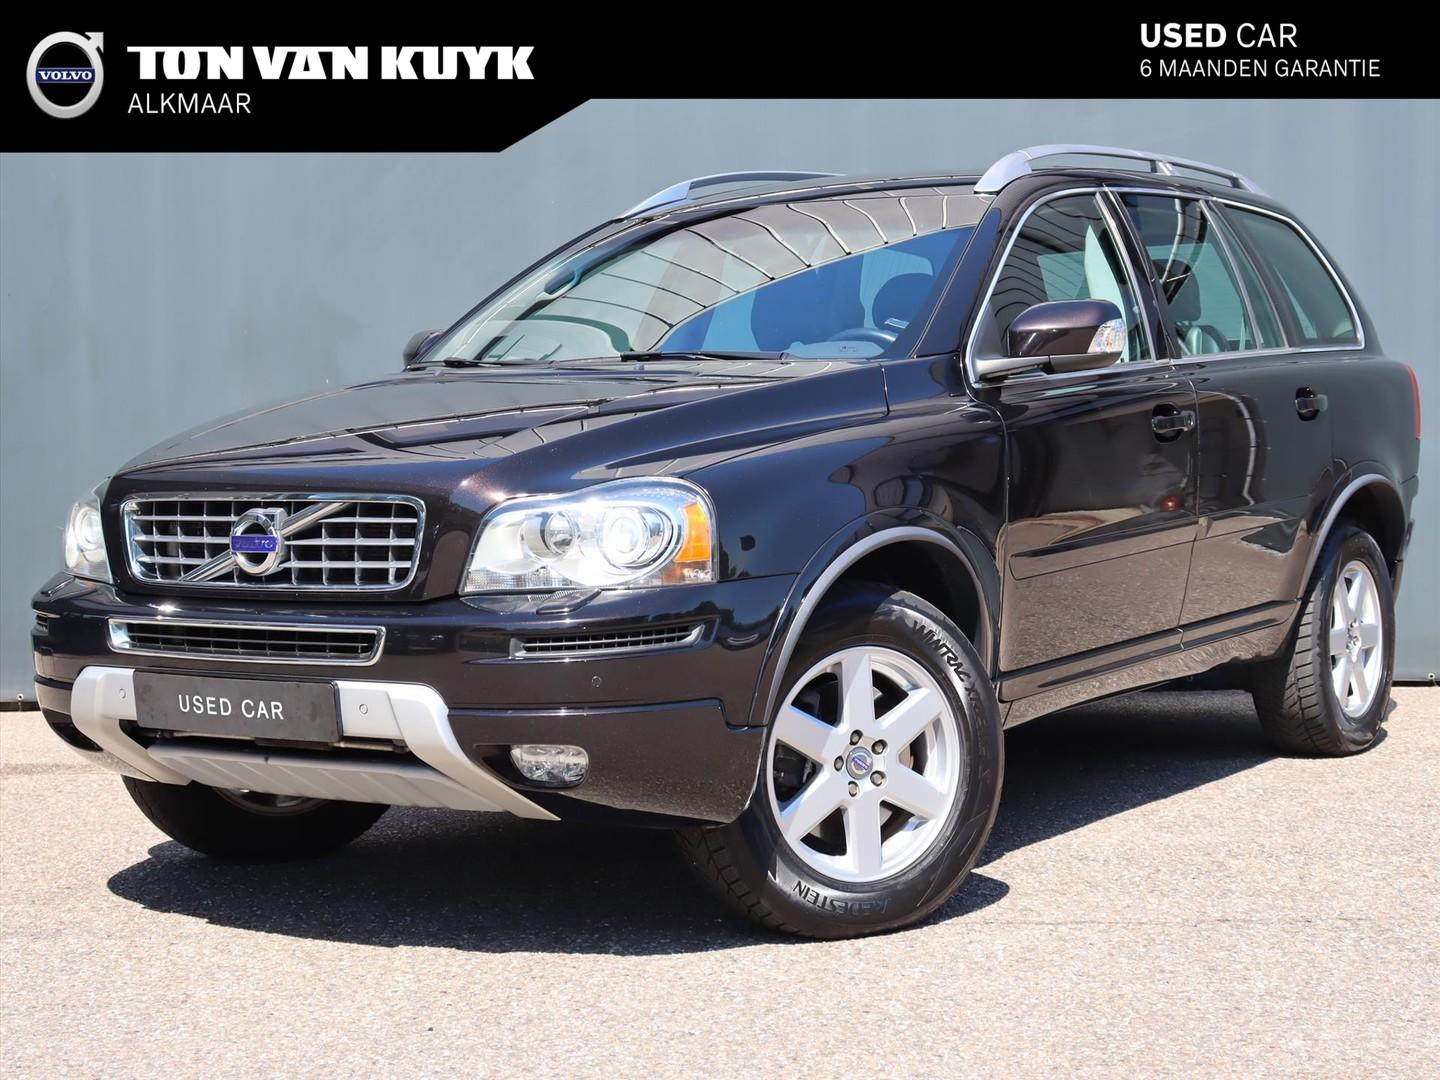 Volvo Xc90 D5 automaat 7p awd limited edition / trekhaak